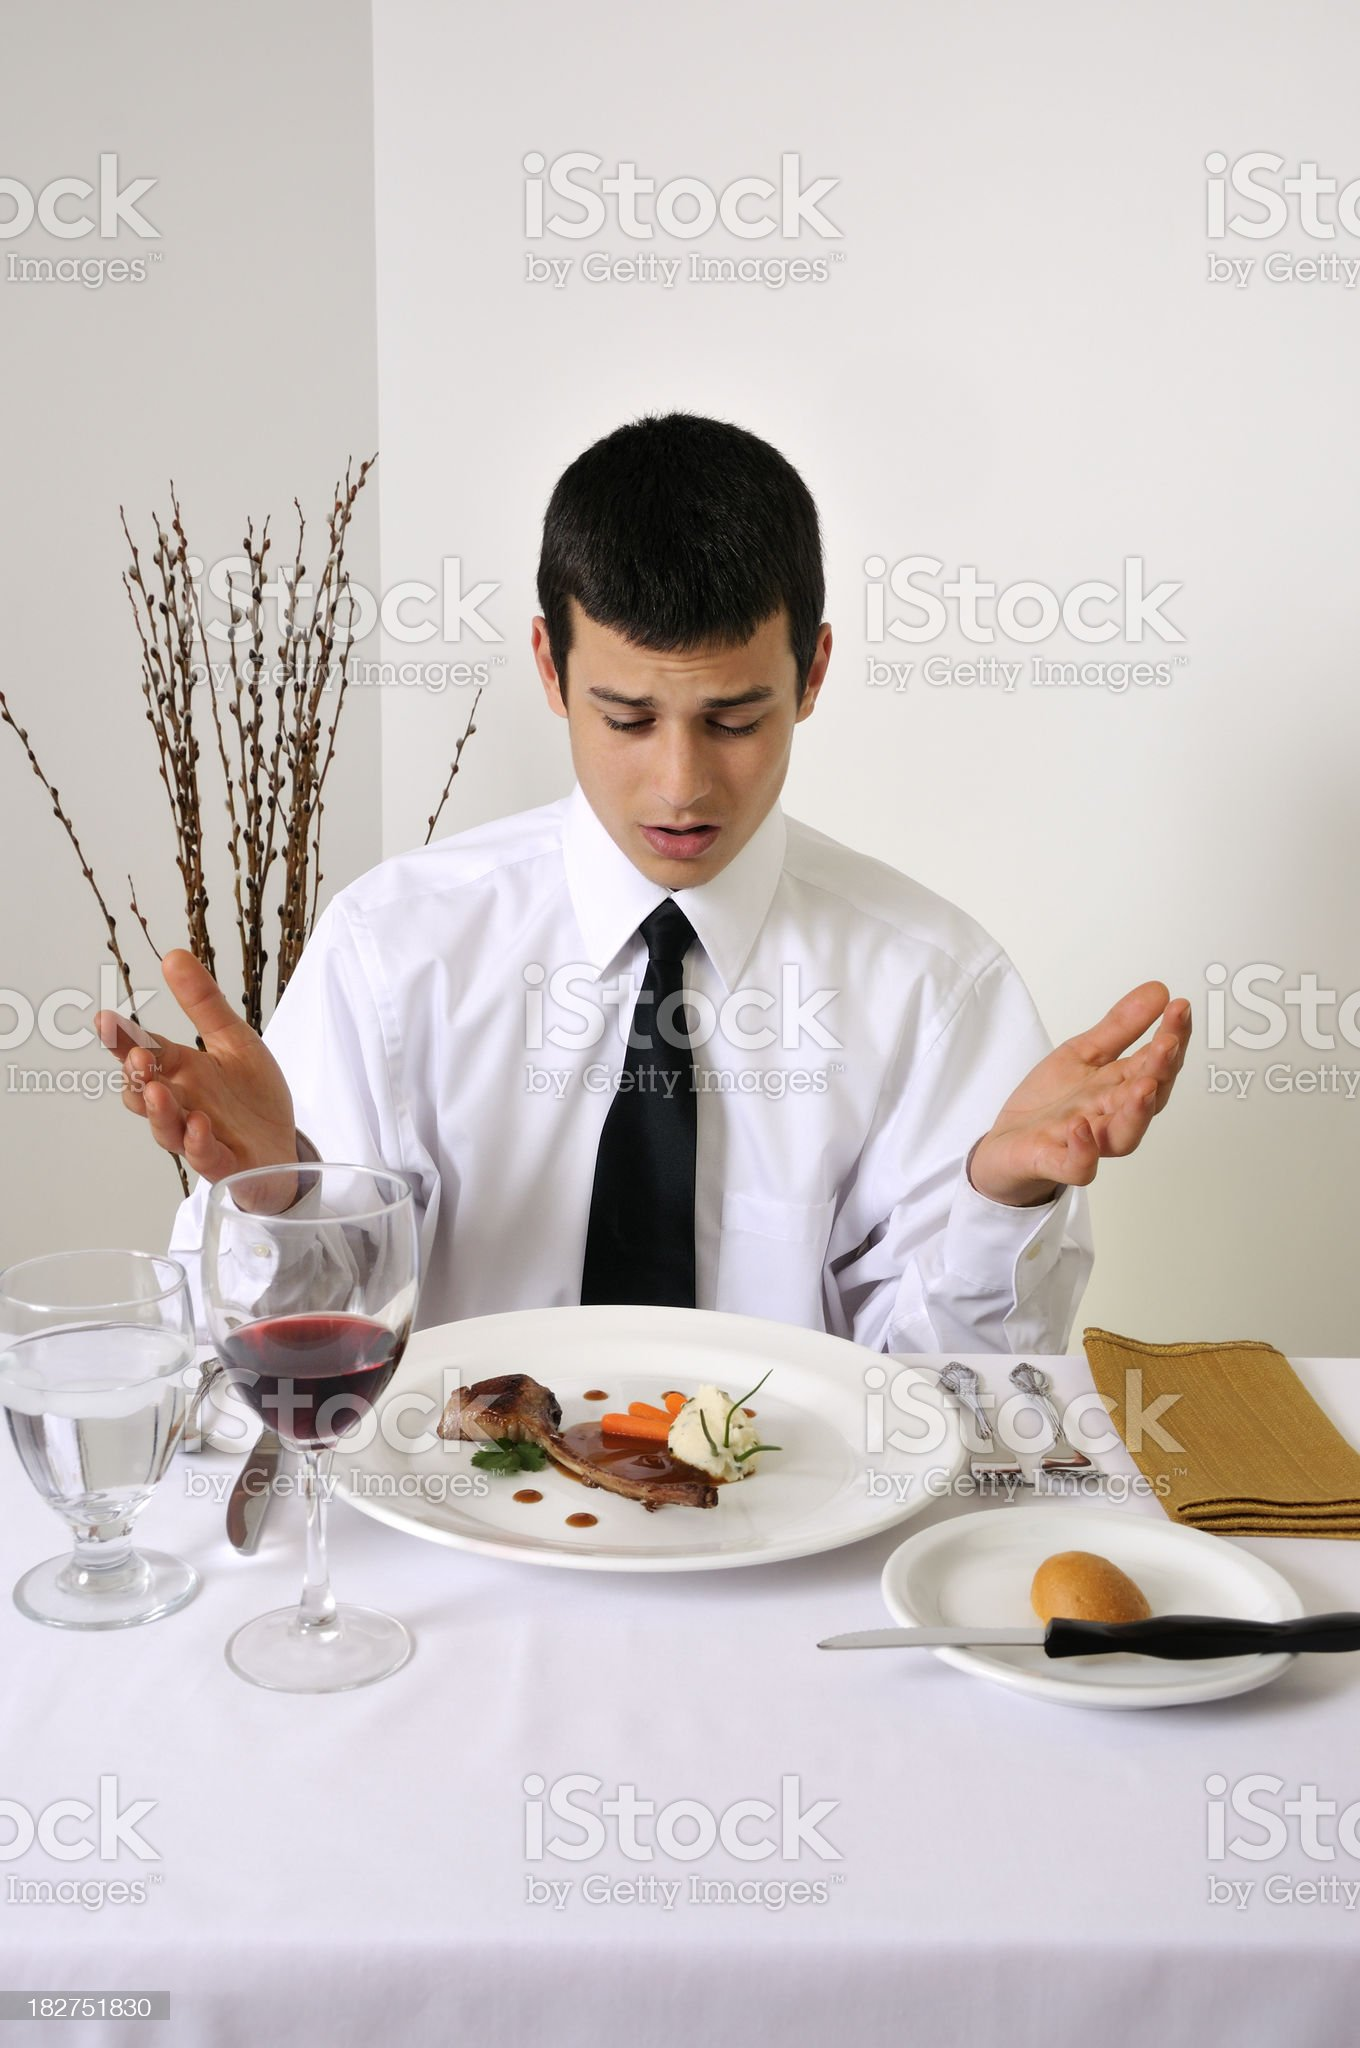 Nouvelle Cuisine: Is That All I Get? royalty-free stock photo